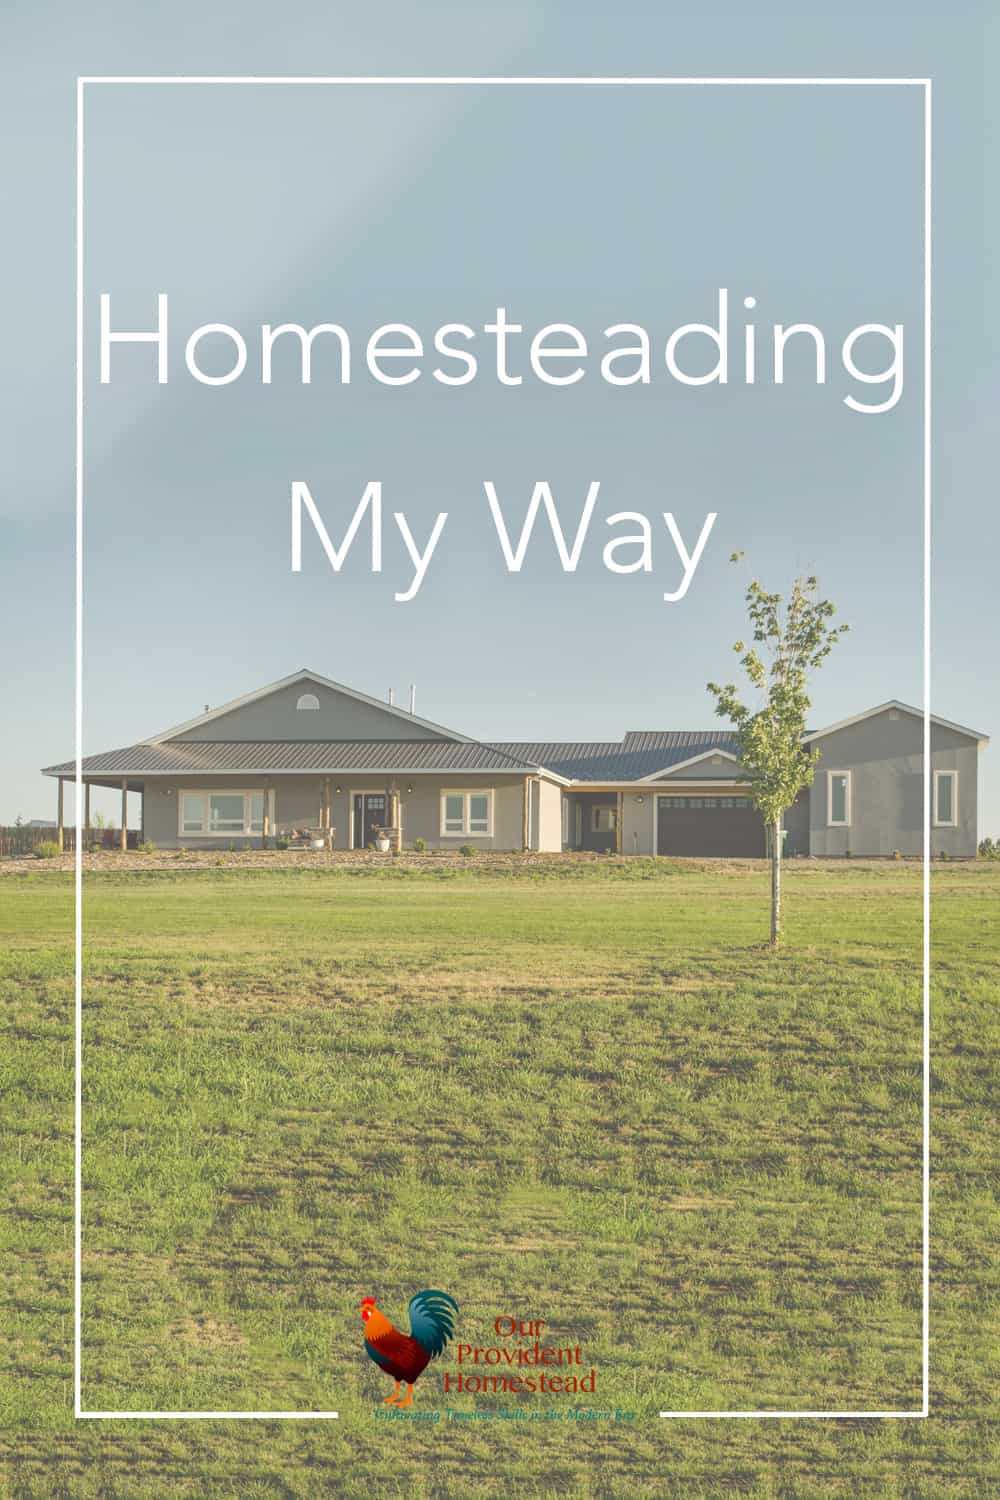 So how am I going to take this idea of homesteading and make it my own? Let me tell you my definition of homesteading for our family. Homesteading   Definition of Homesteader